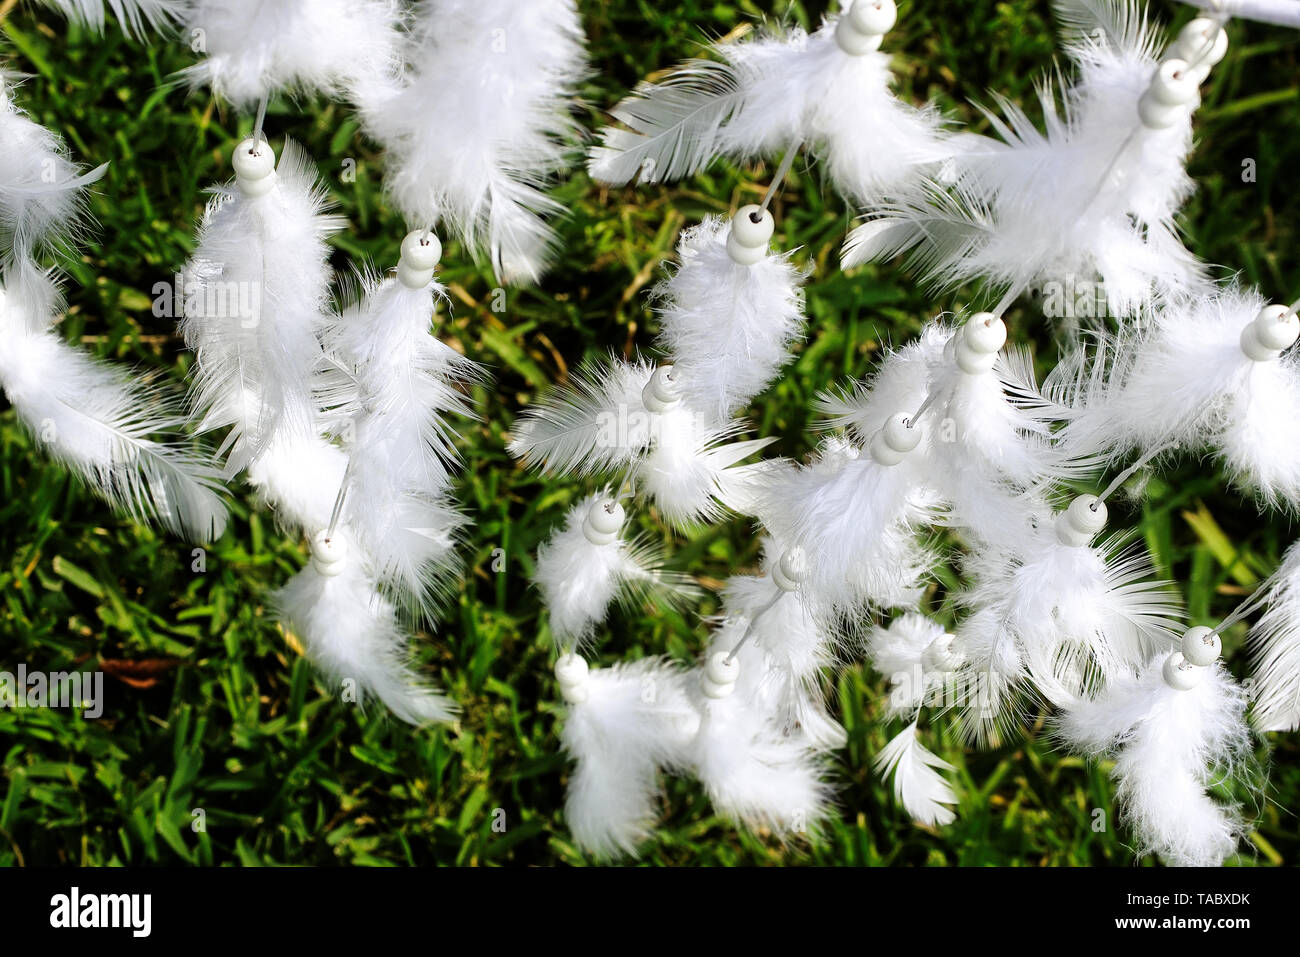 White feathers of a dove bird tied with leather string from dream catcher - Stock Image